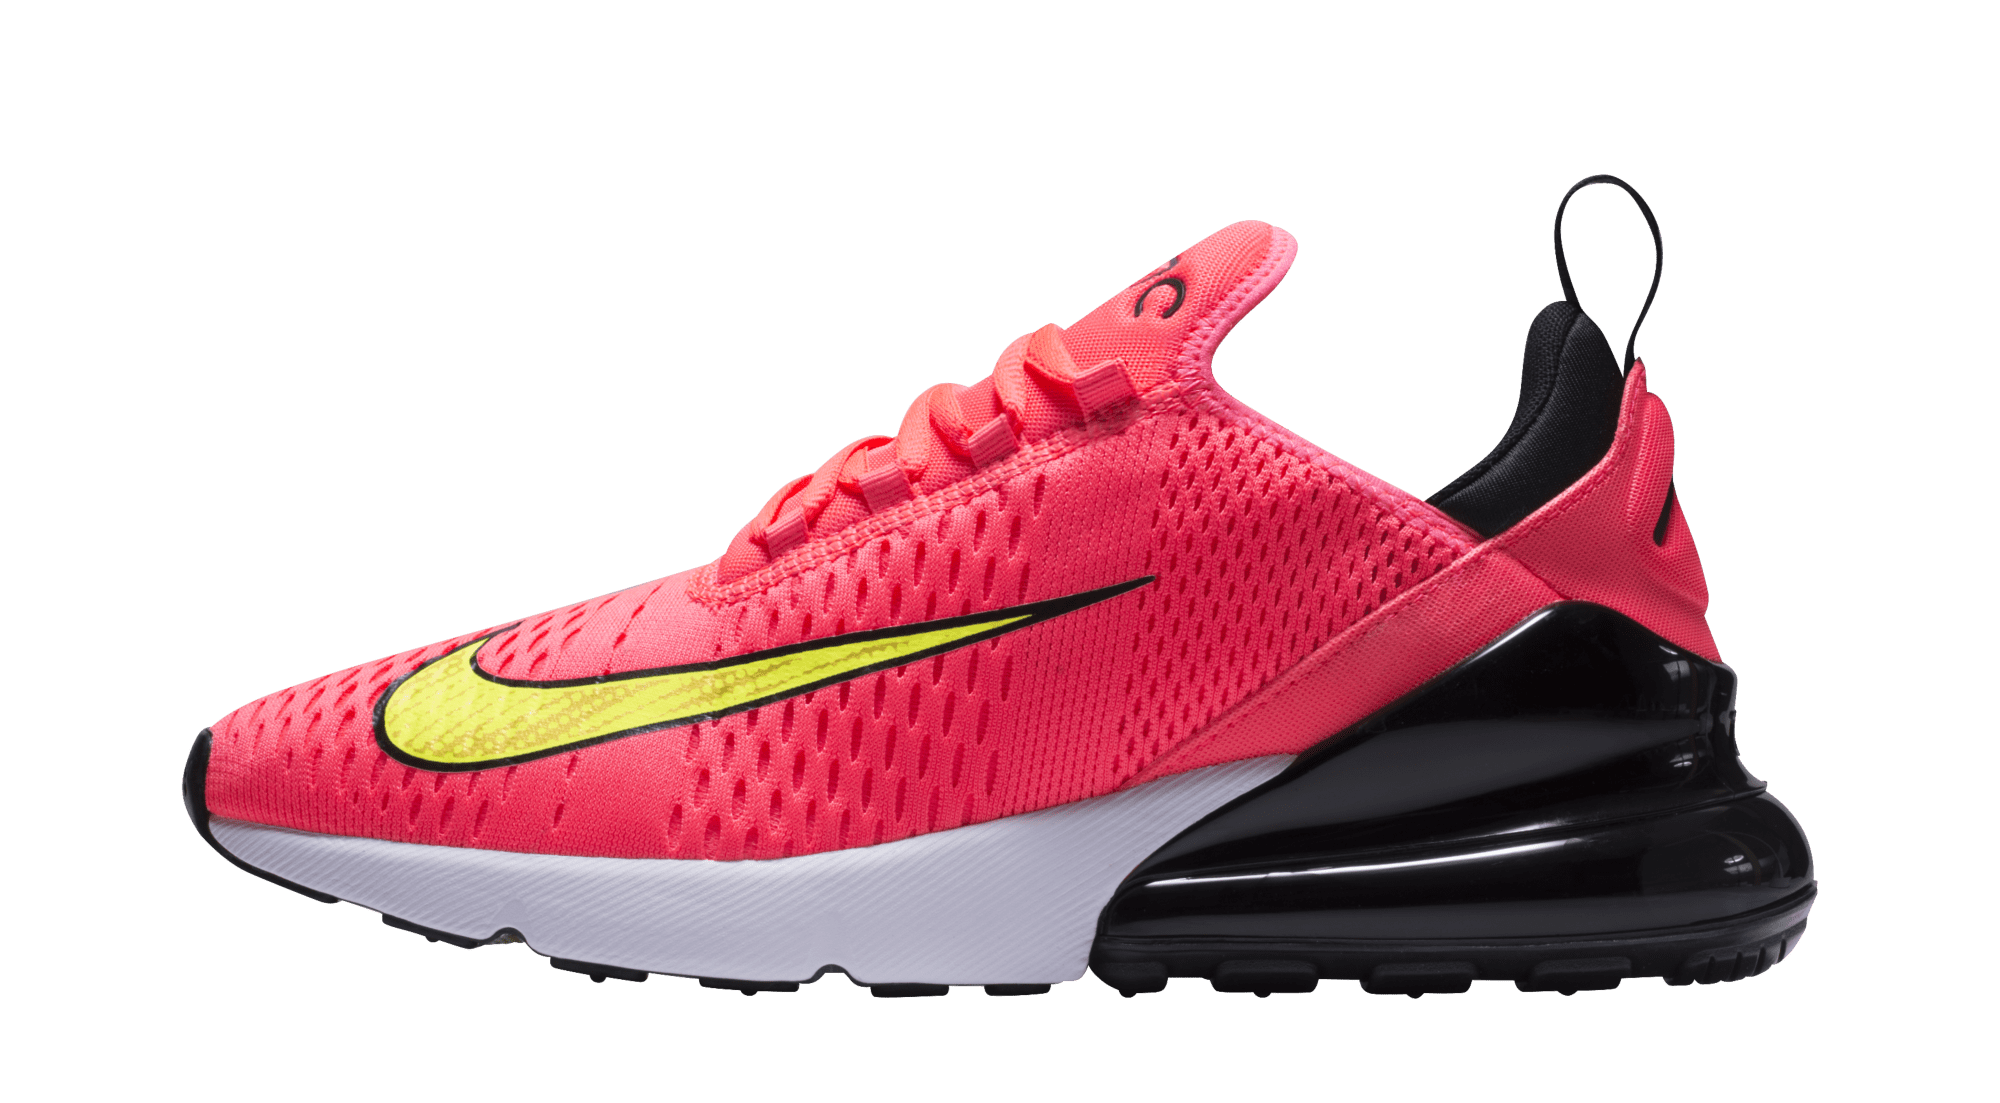 low priced 5e746 c312f Nike Mercurial Heritage Air Max 270 iD Options | Sole Collector